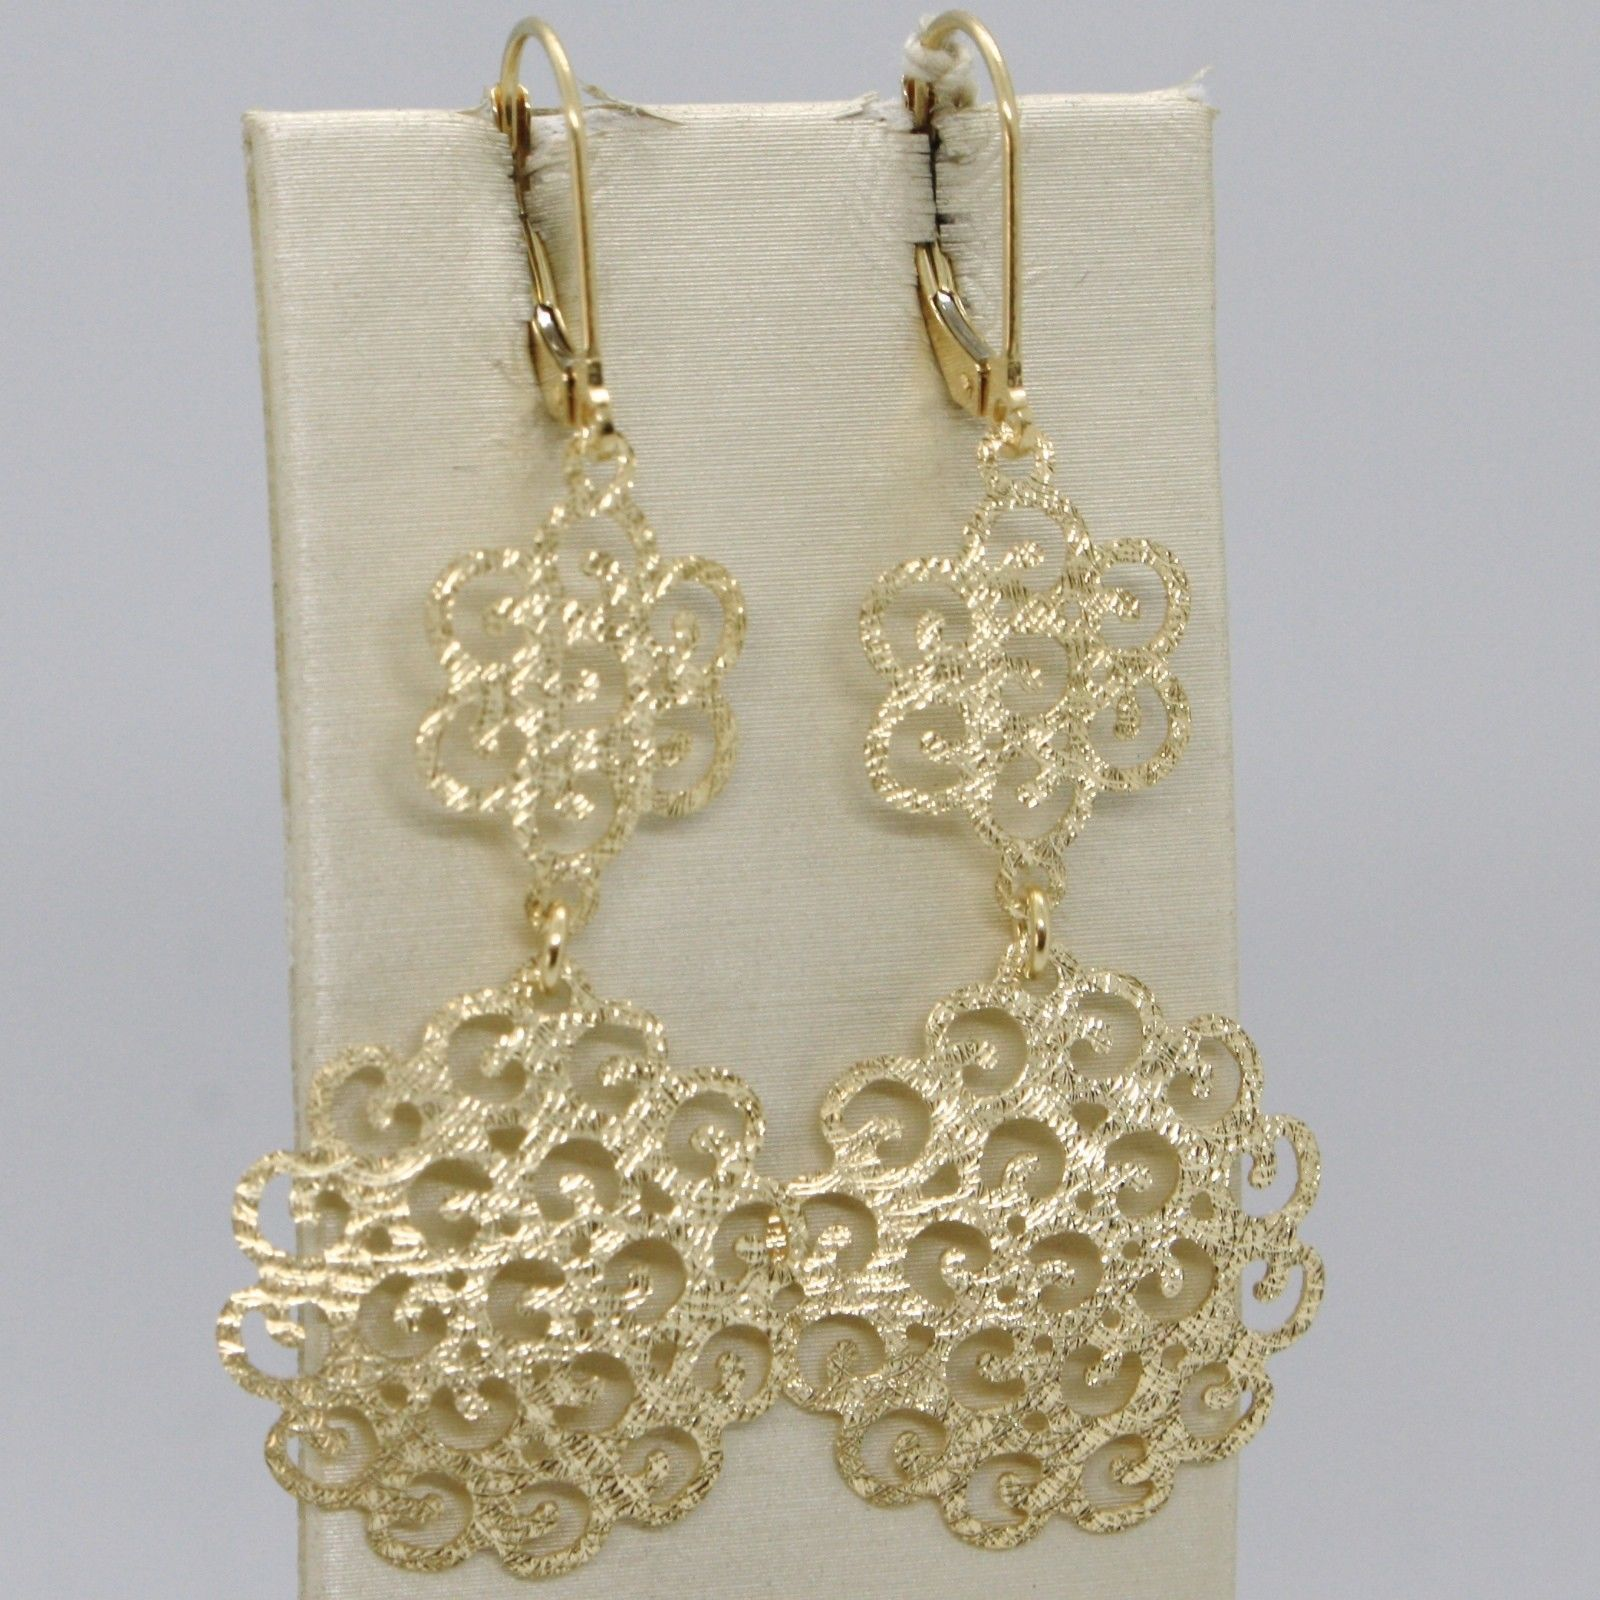 YELLOW GOLD EARRINGS 18K 750 HANGING FLOWERS PROCESSED AND PERFORATED